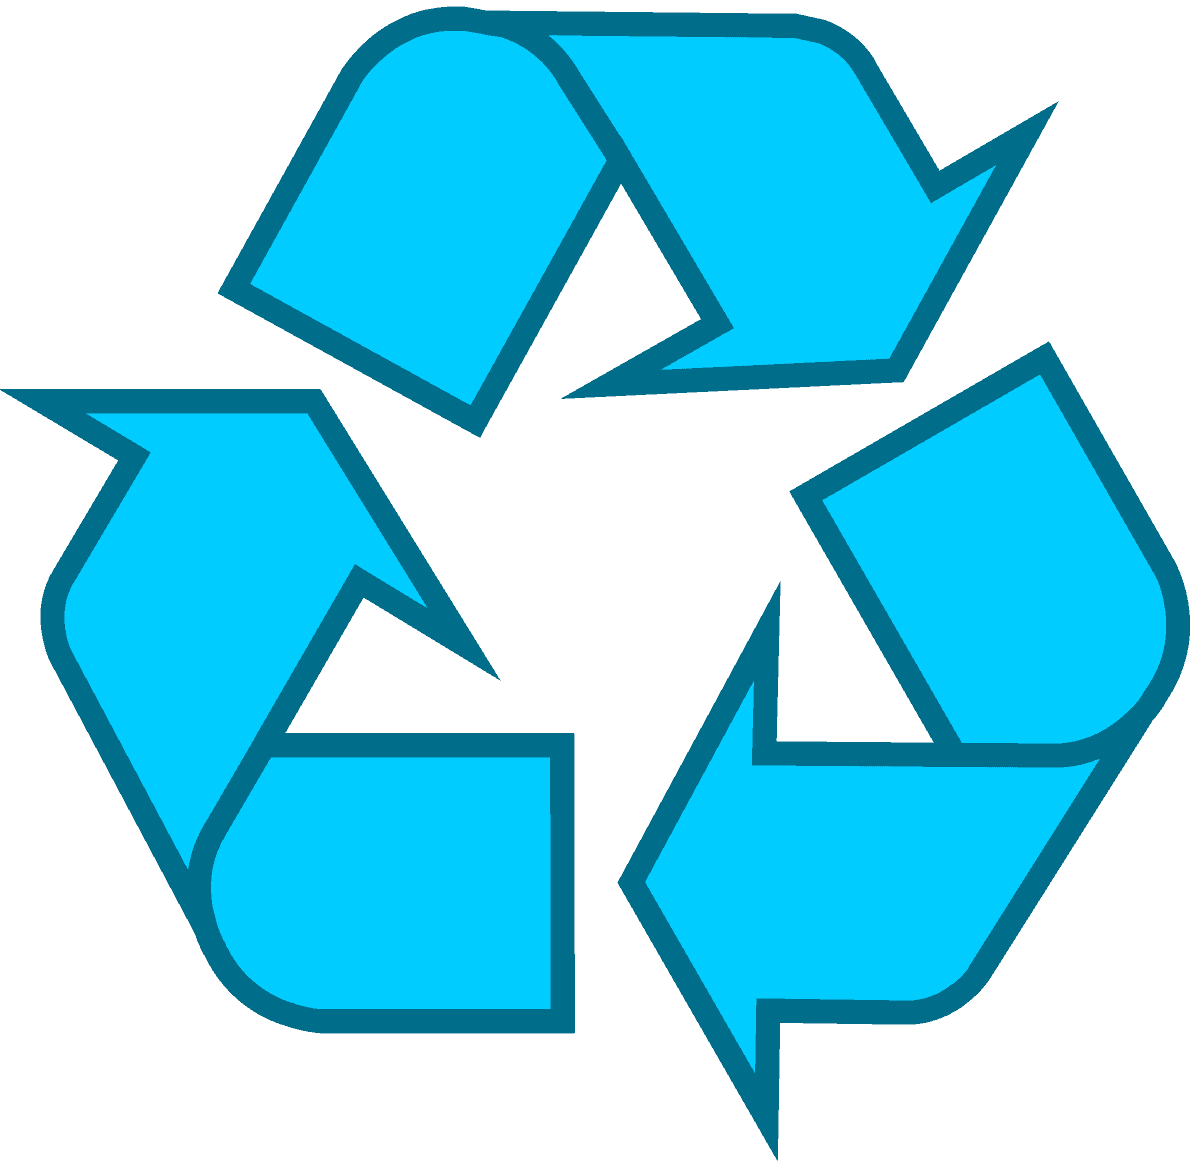 recycling-symbol-icon-outline-solid-light-blue